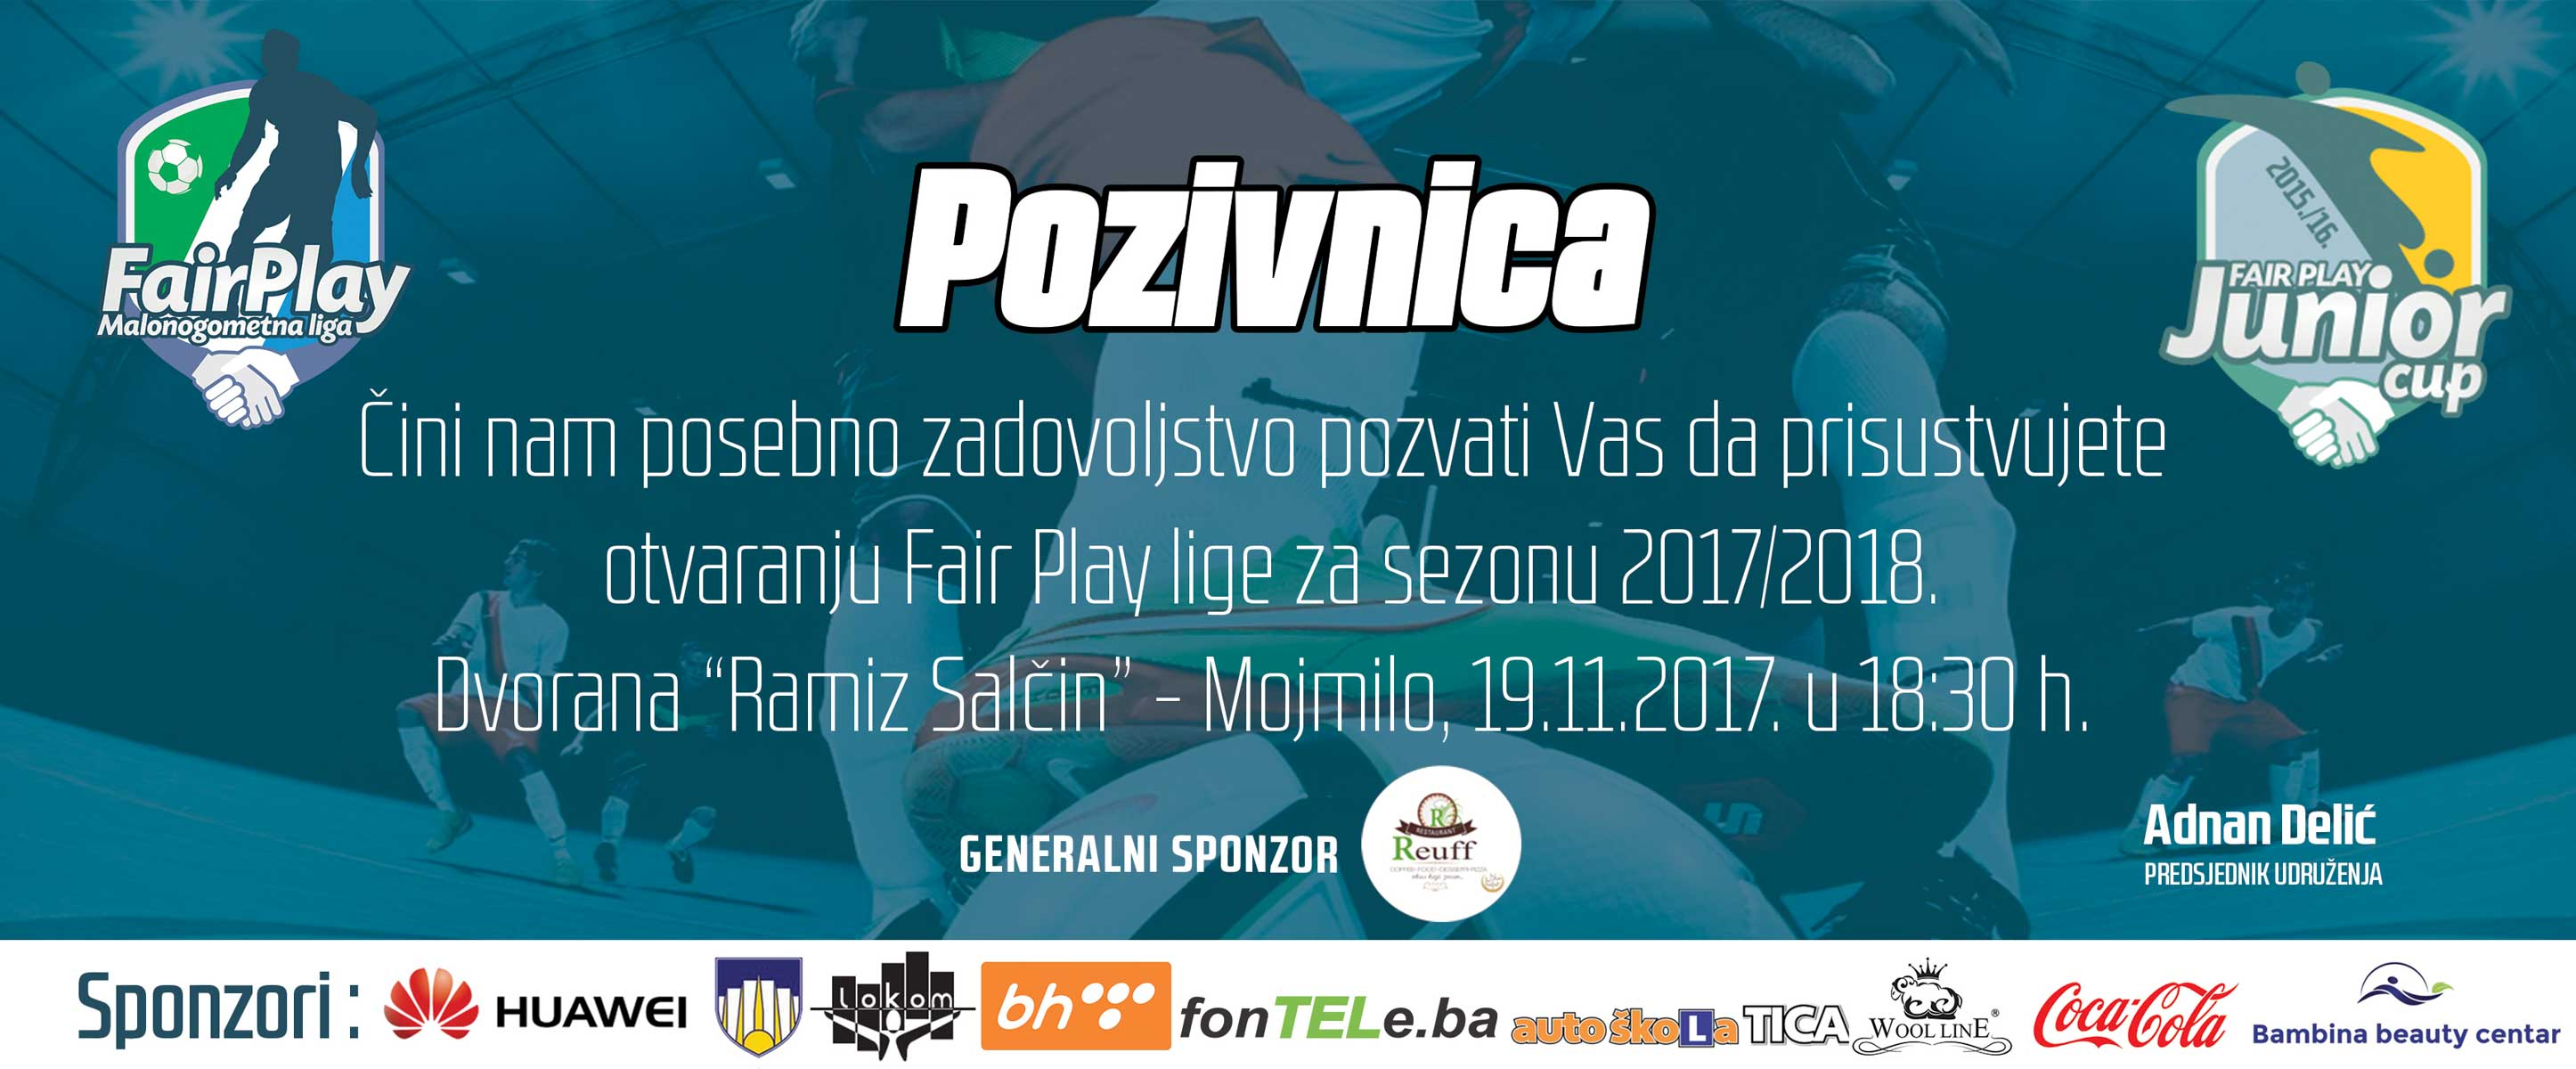 Fairplay pozivnica_2017